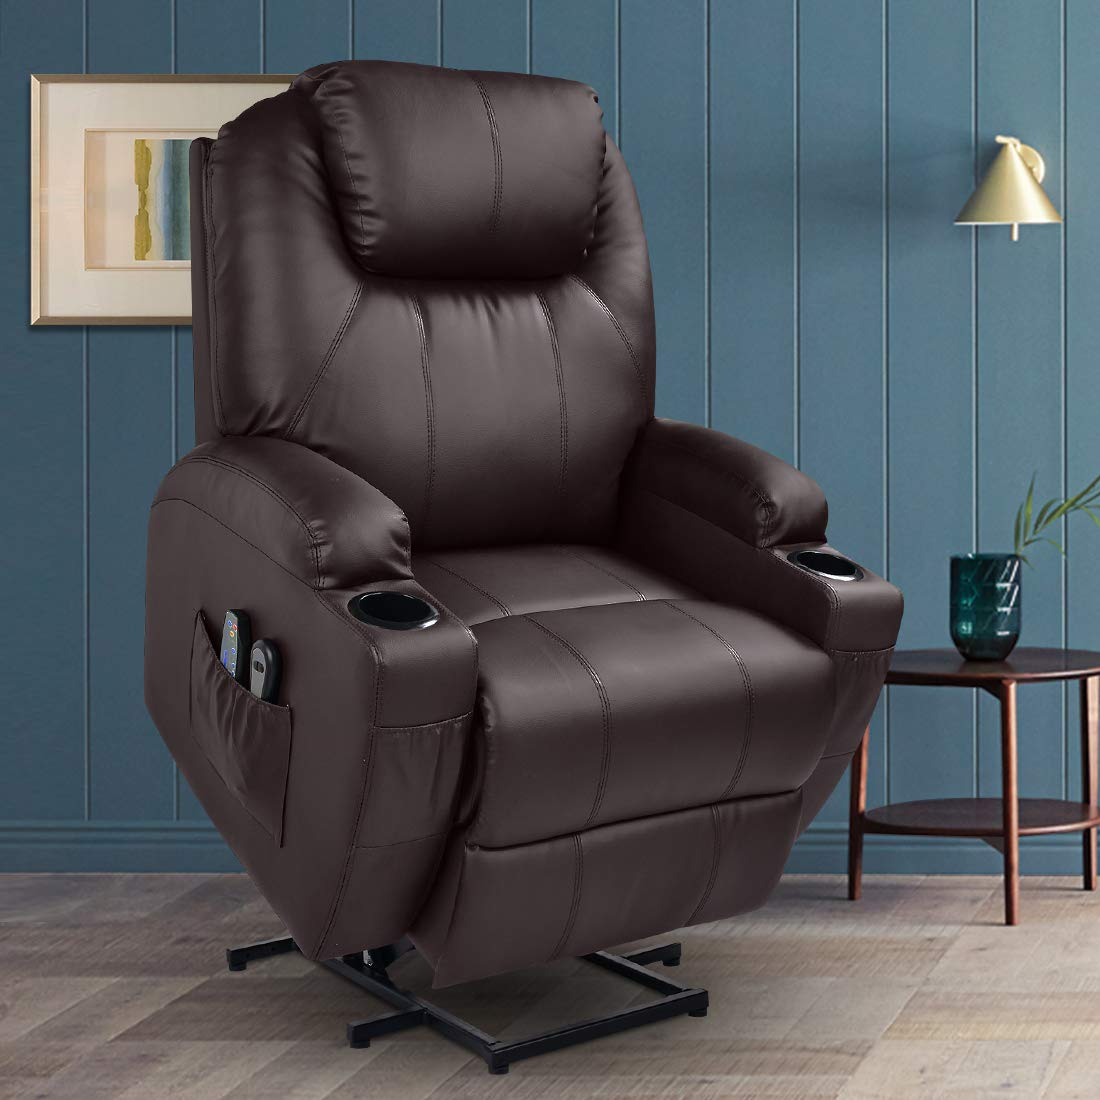 MAGIC UNION Power Lift Massage Recliner Faux leather Heated Vibration with Remote Controls Wheels for Elderly Catnap Sofa- Brown by MAGIC UNION